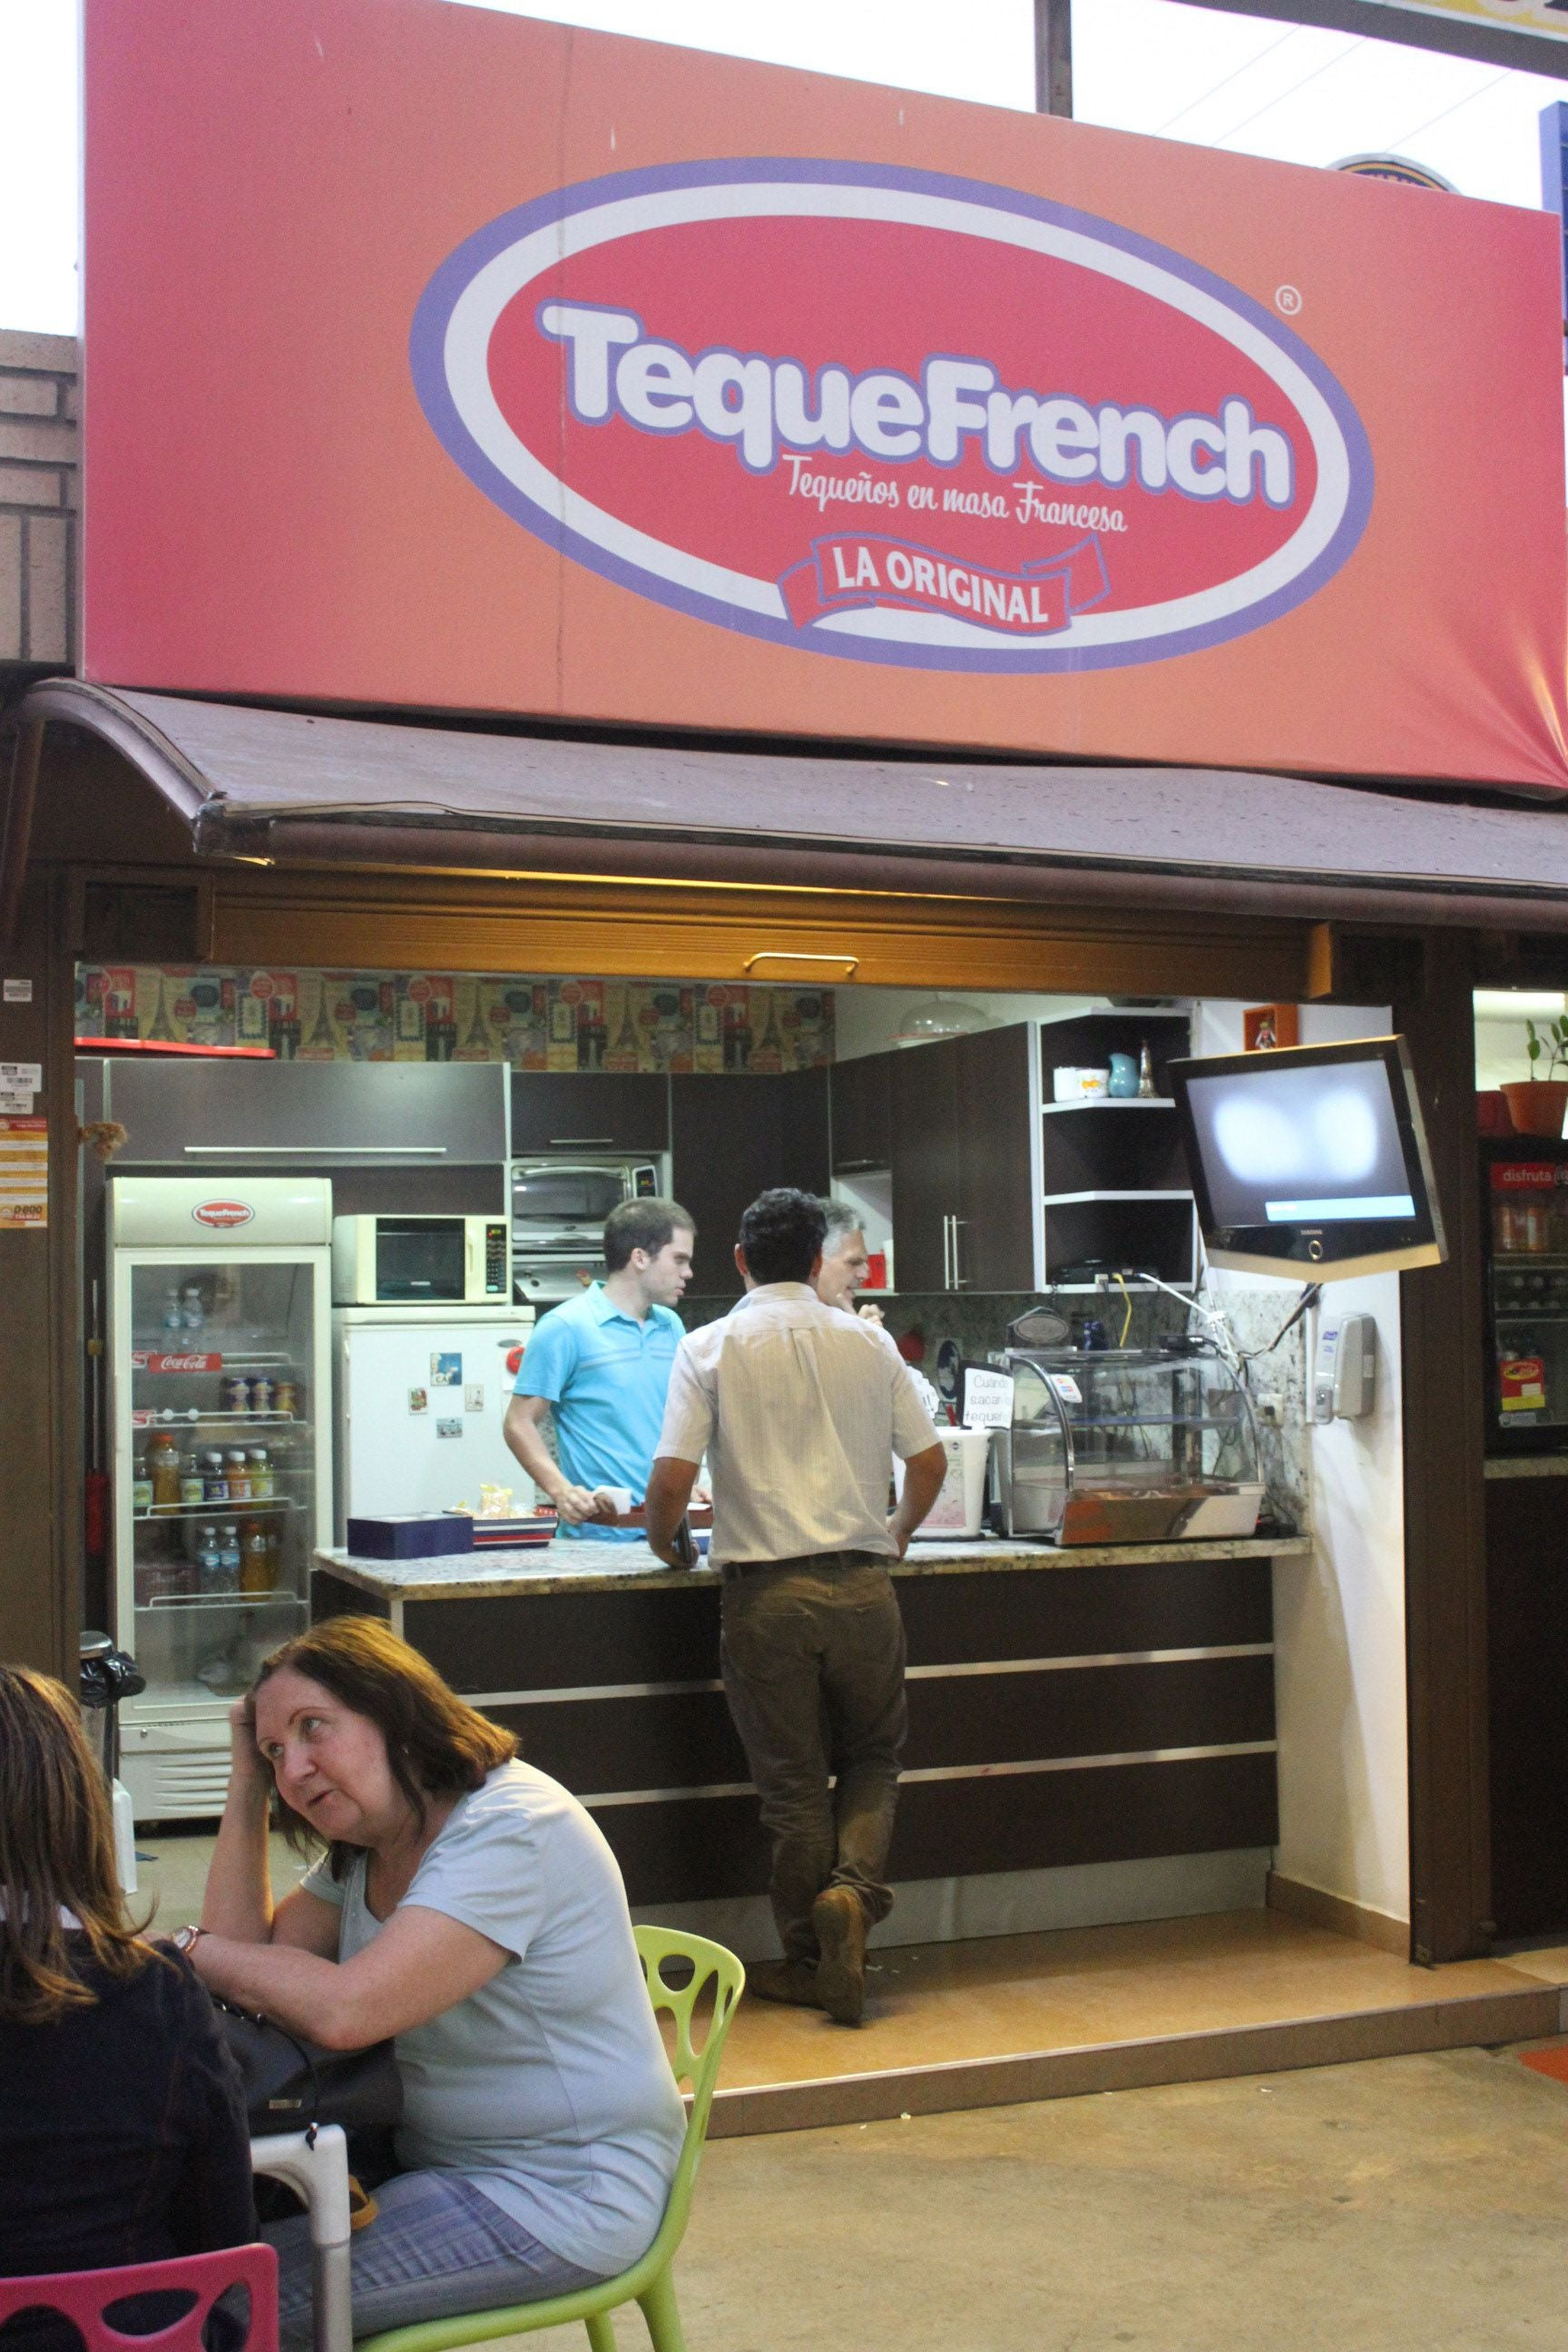 Food in Tequefrench